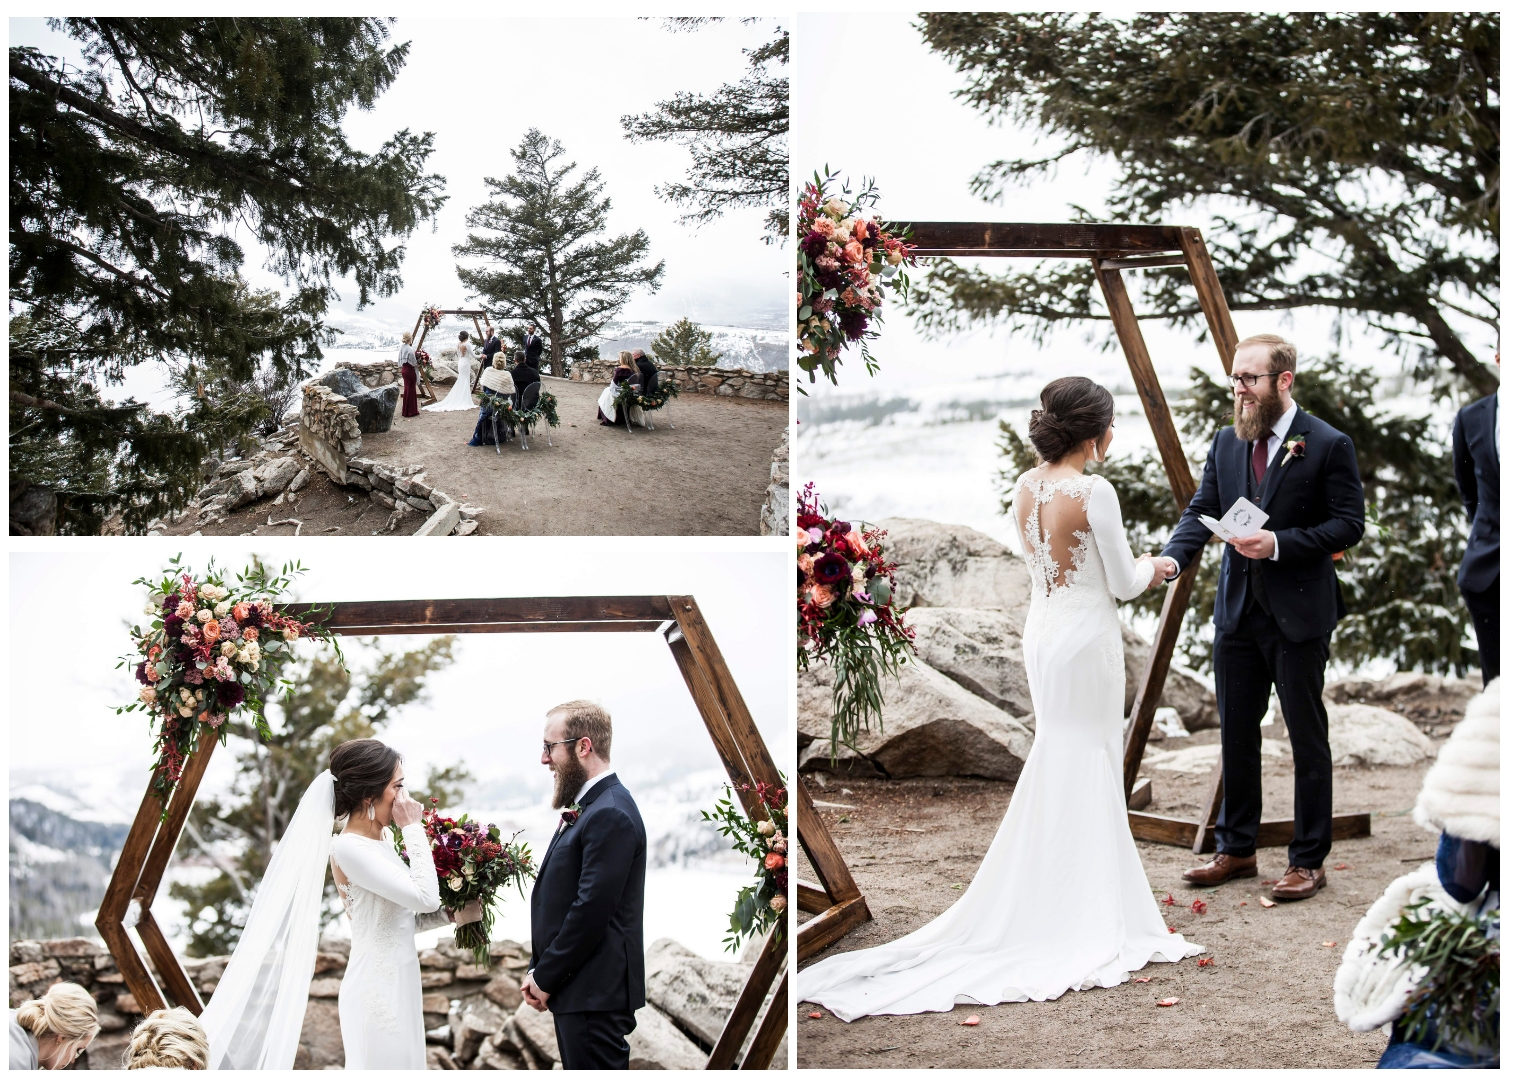 A 3 photo collage of their mountain top wedding ceremony